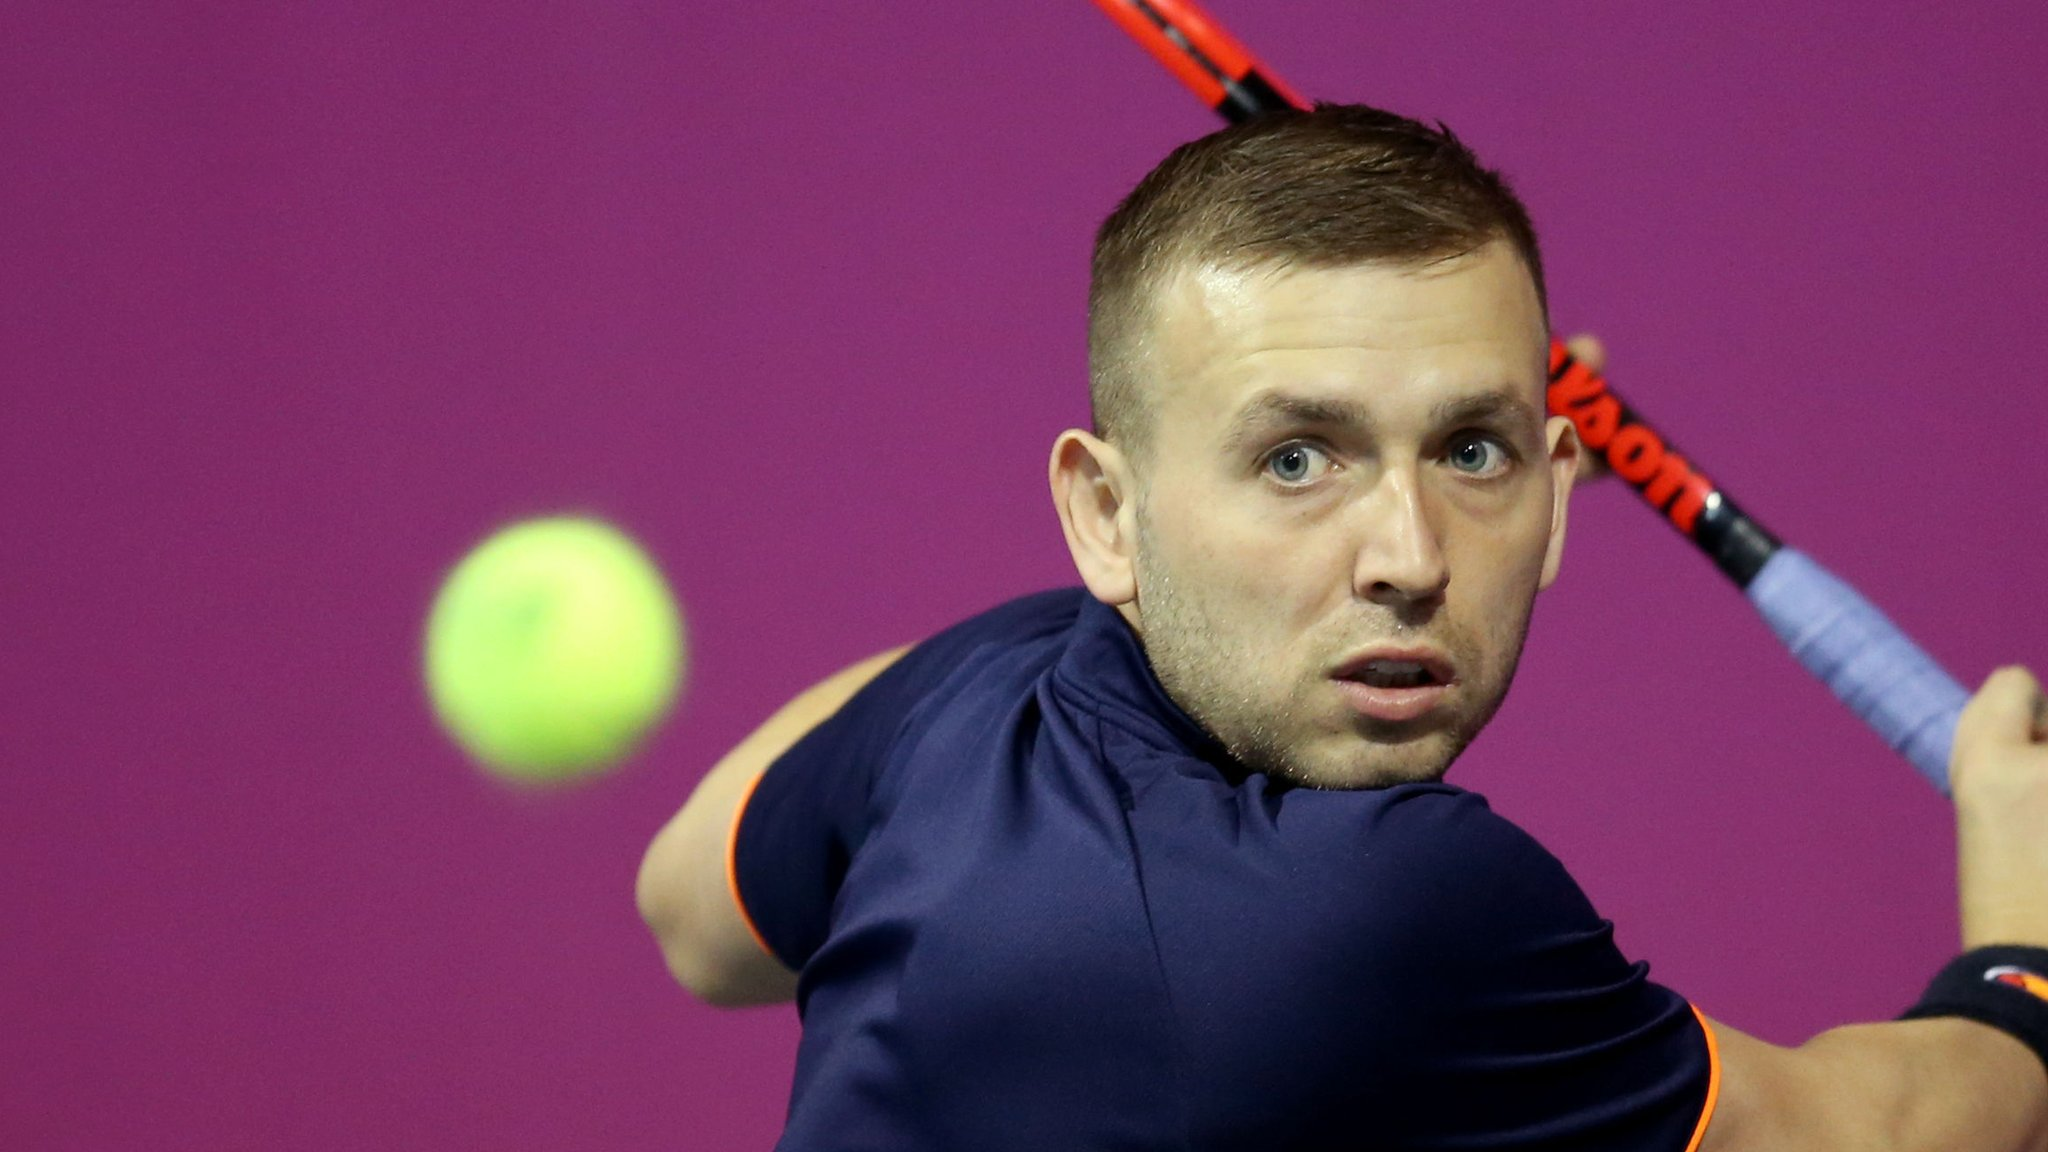 Evans wins in Loughborough but Broady loses in French Open qualifying